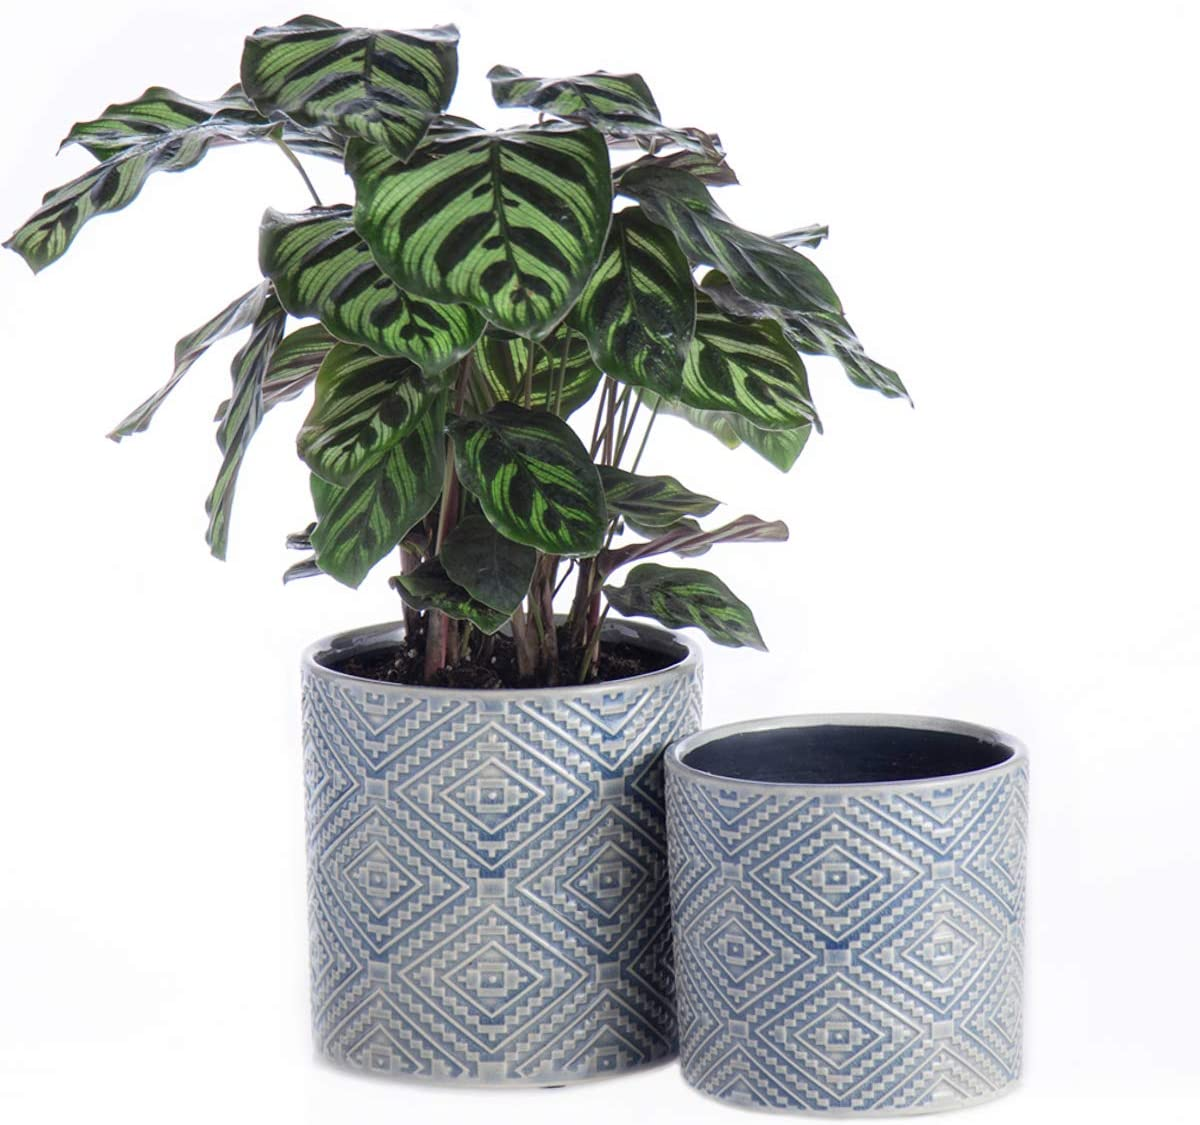 "KYY Ceramic Planters Garden Flower Pots with Drainage Hole 5.7"" and 4.5"" Set of 2 Indoor Outdoor Modern Plant Containers(Blue Grey)"